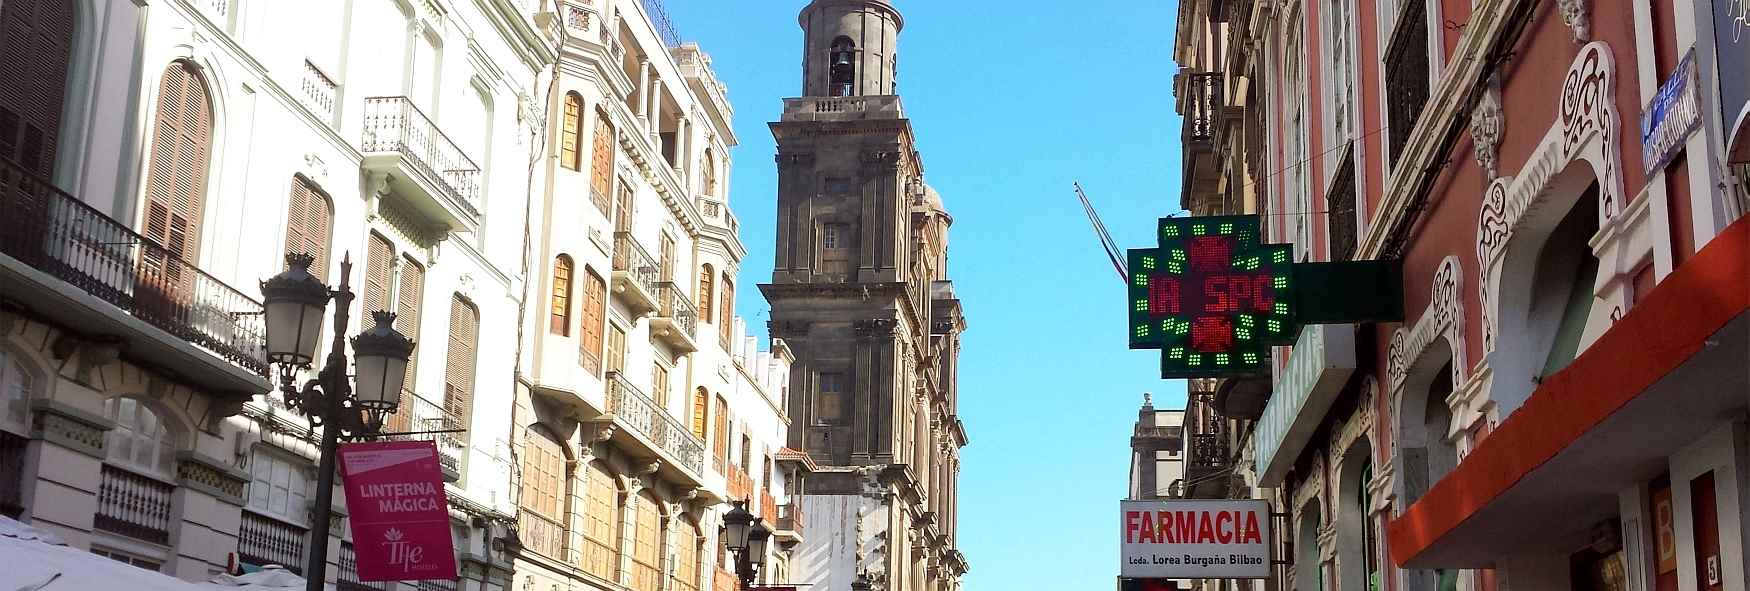 Things to do in Las Palmas Gran Canaria